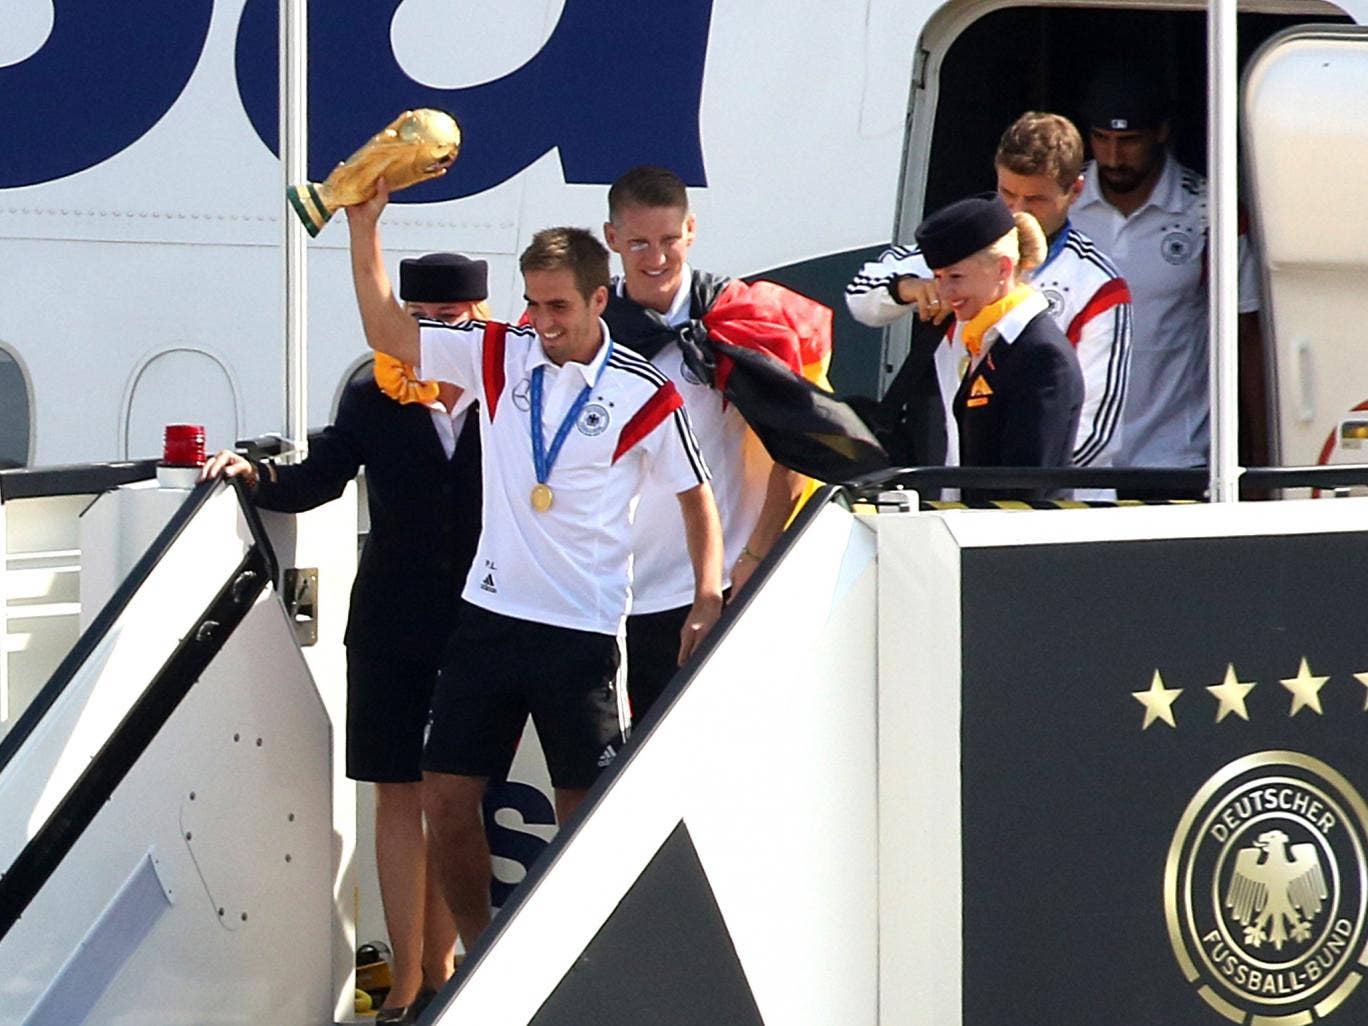 Philipp Lahm alights the plane with the World Cup